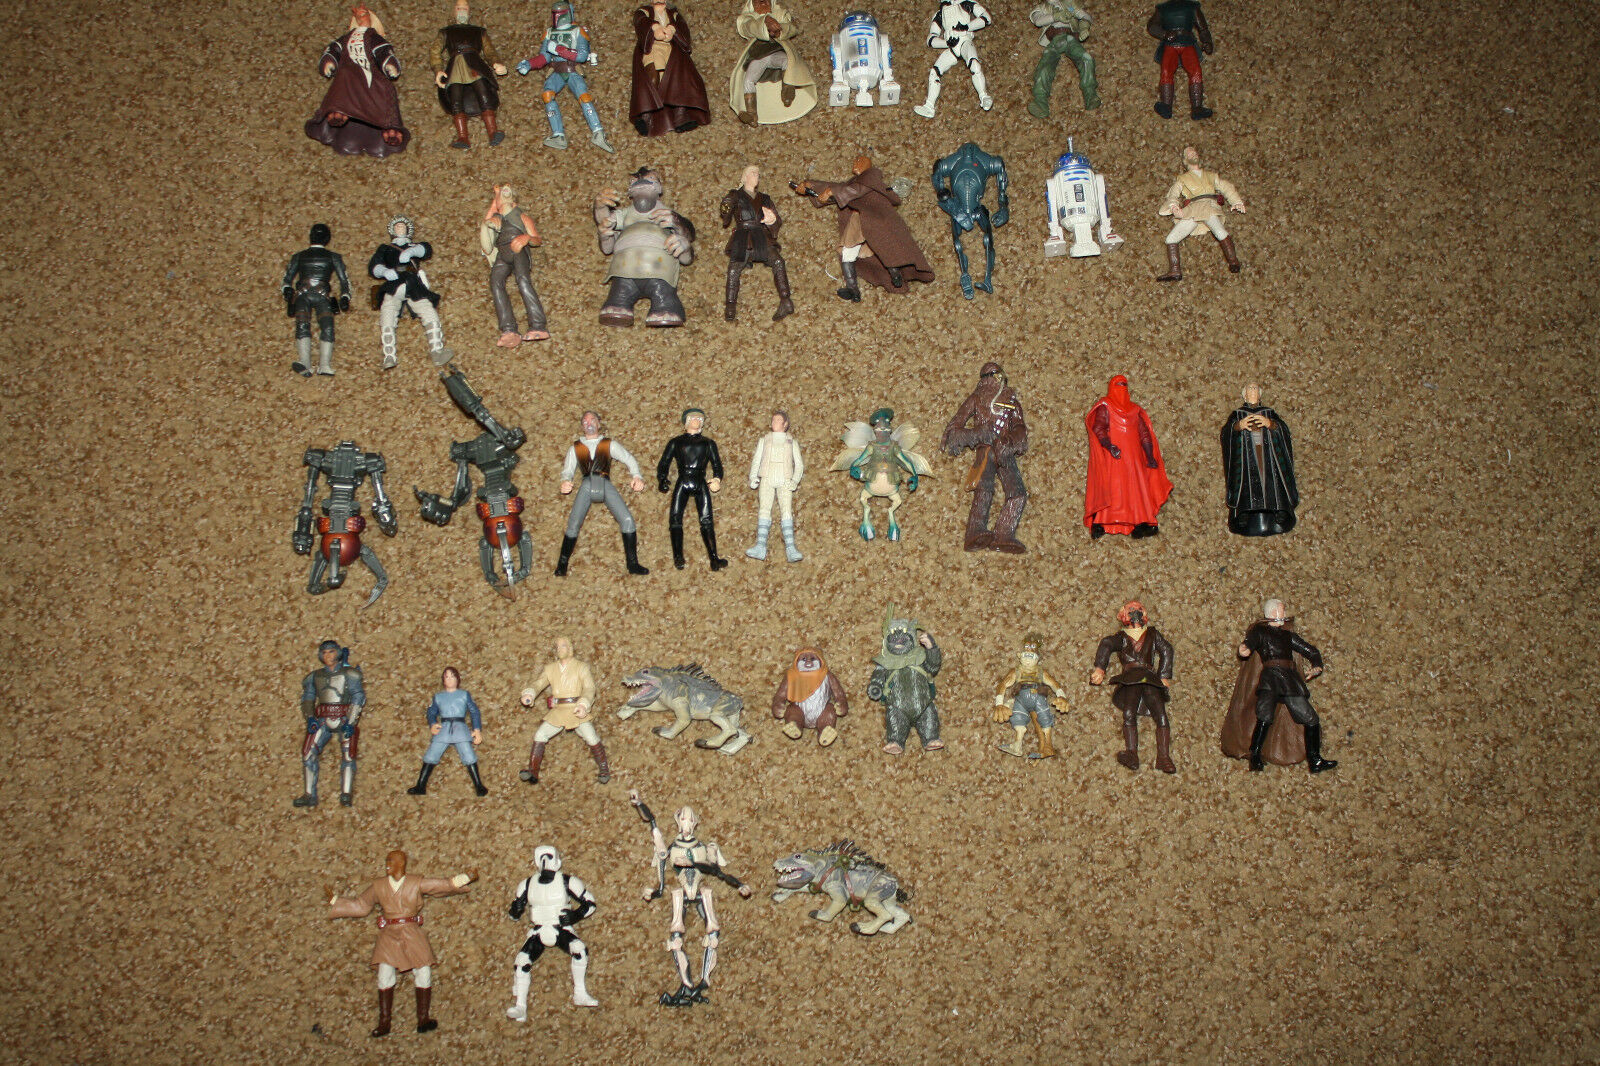 Star wars action - figuren viel (40)